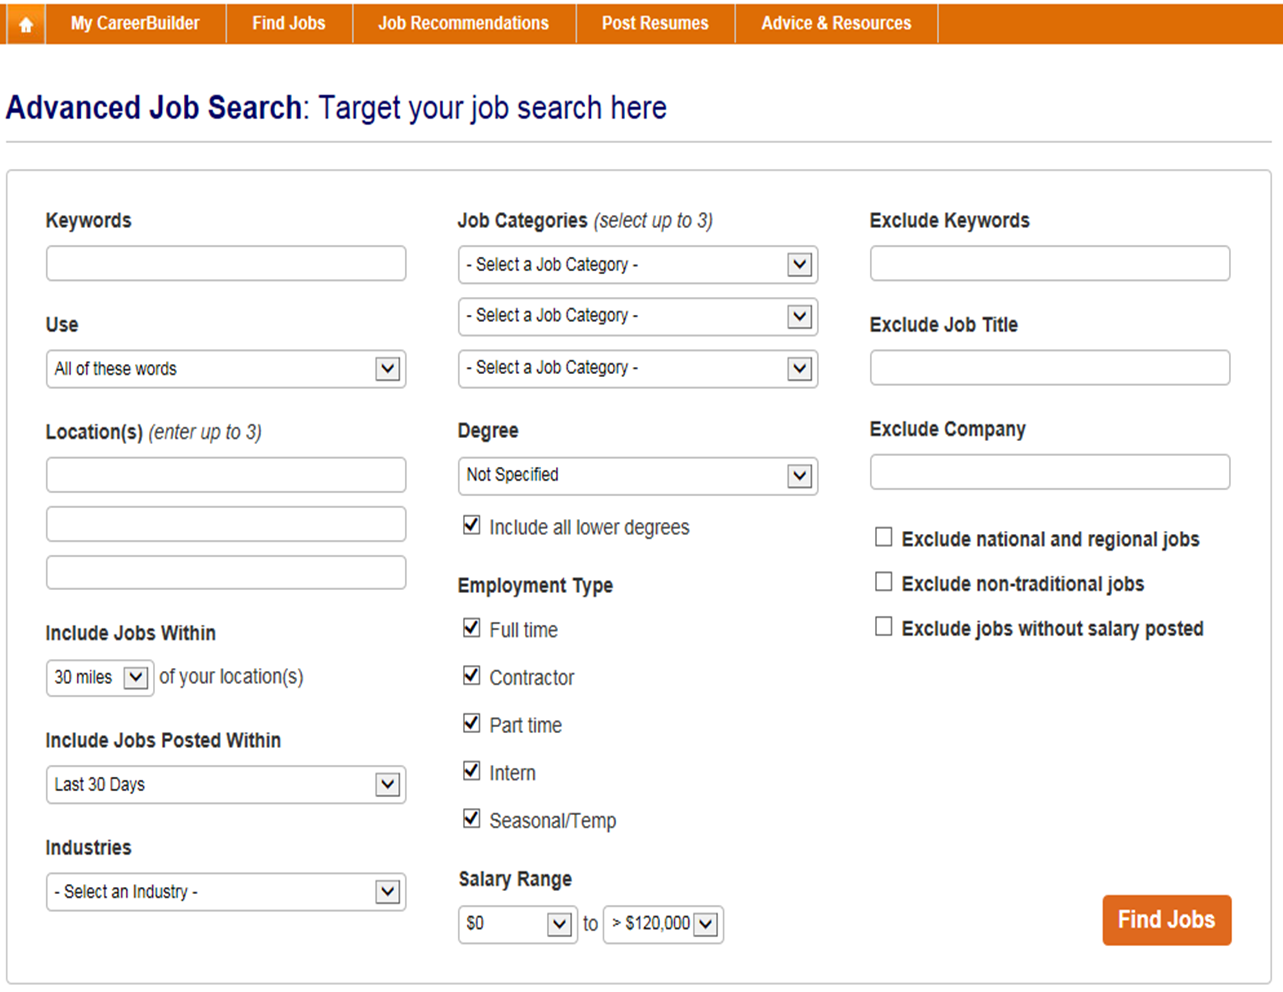 how do i refine my job search in addition to the advanced search options on careerbuilder you can use special keywords and characters to refine your search